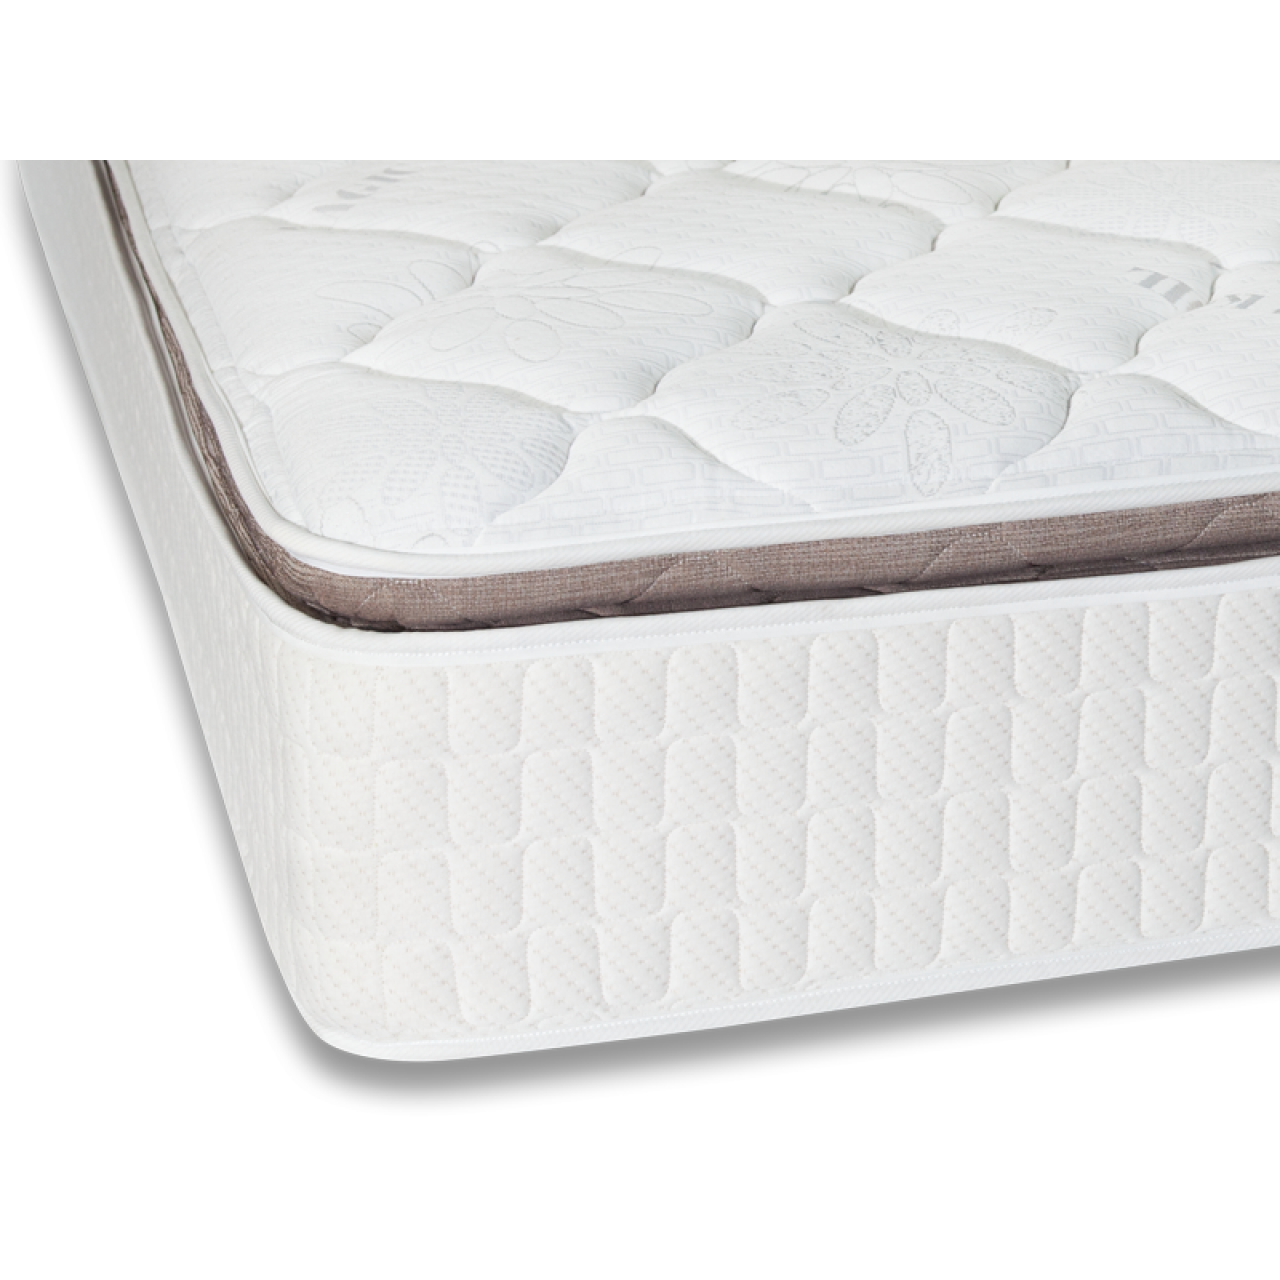 hybrid inches sleep idlesleep design latex mattress hybird sided review idle